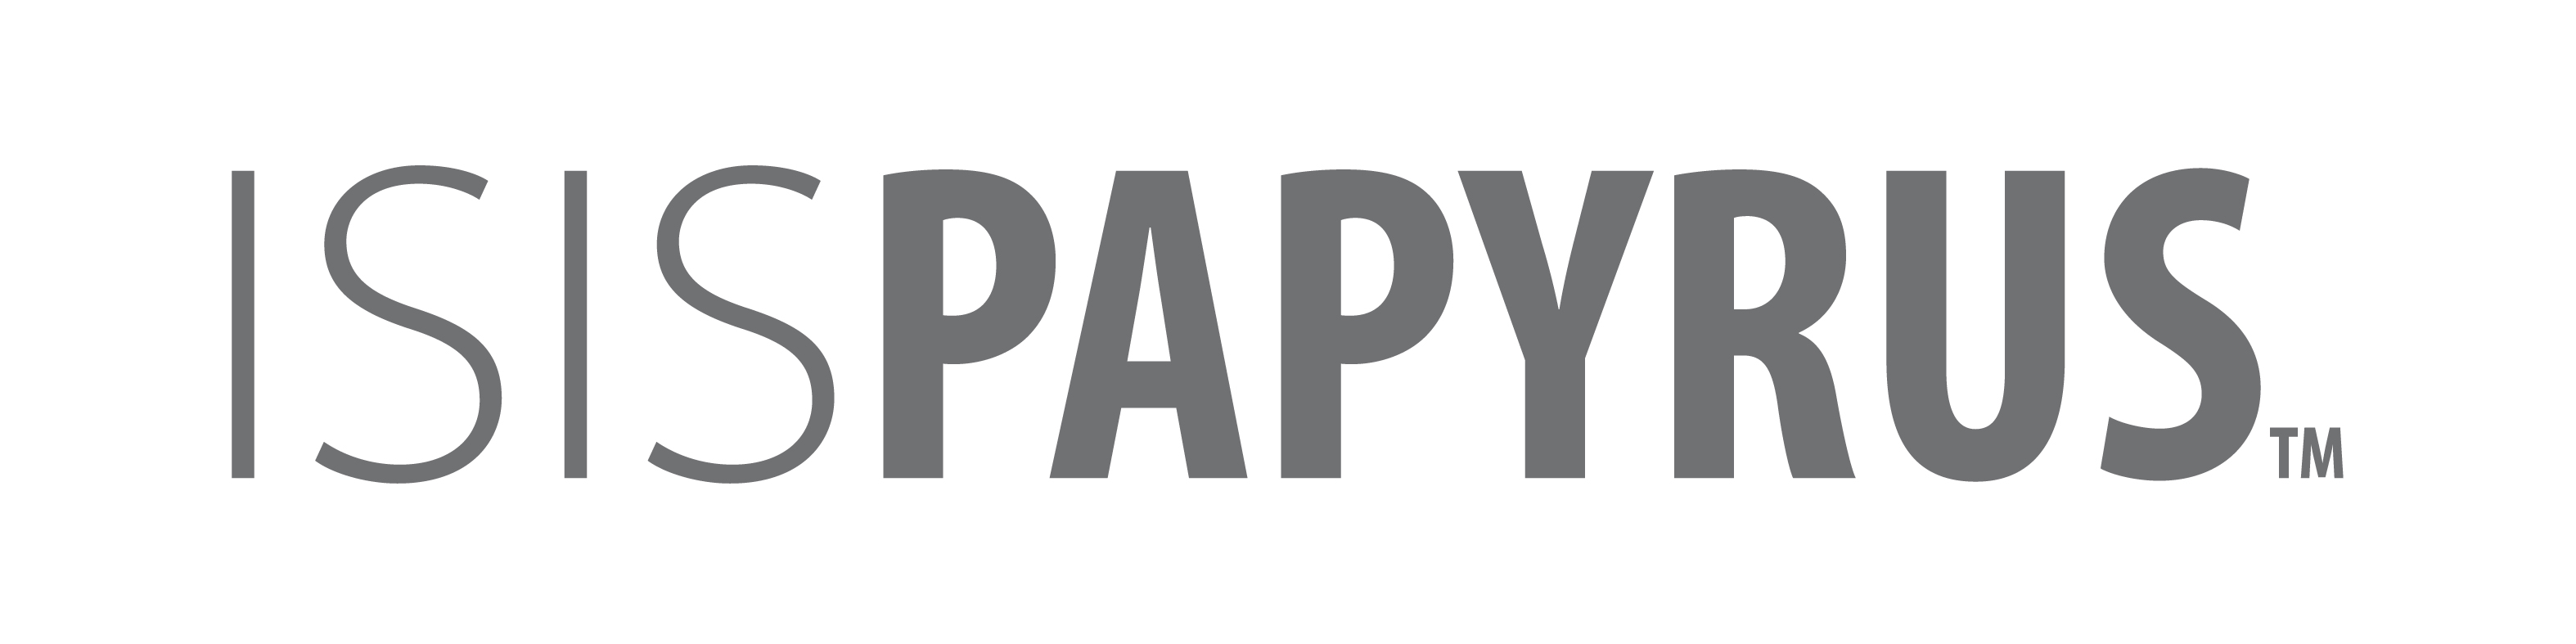 File Isispapyrus Text Logo Jpg Wikimedia Commons